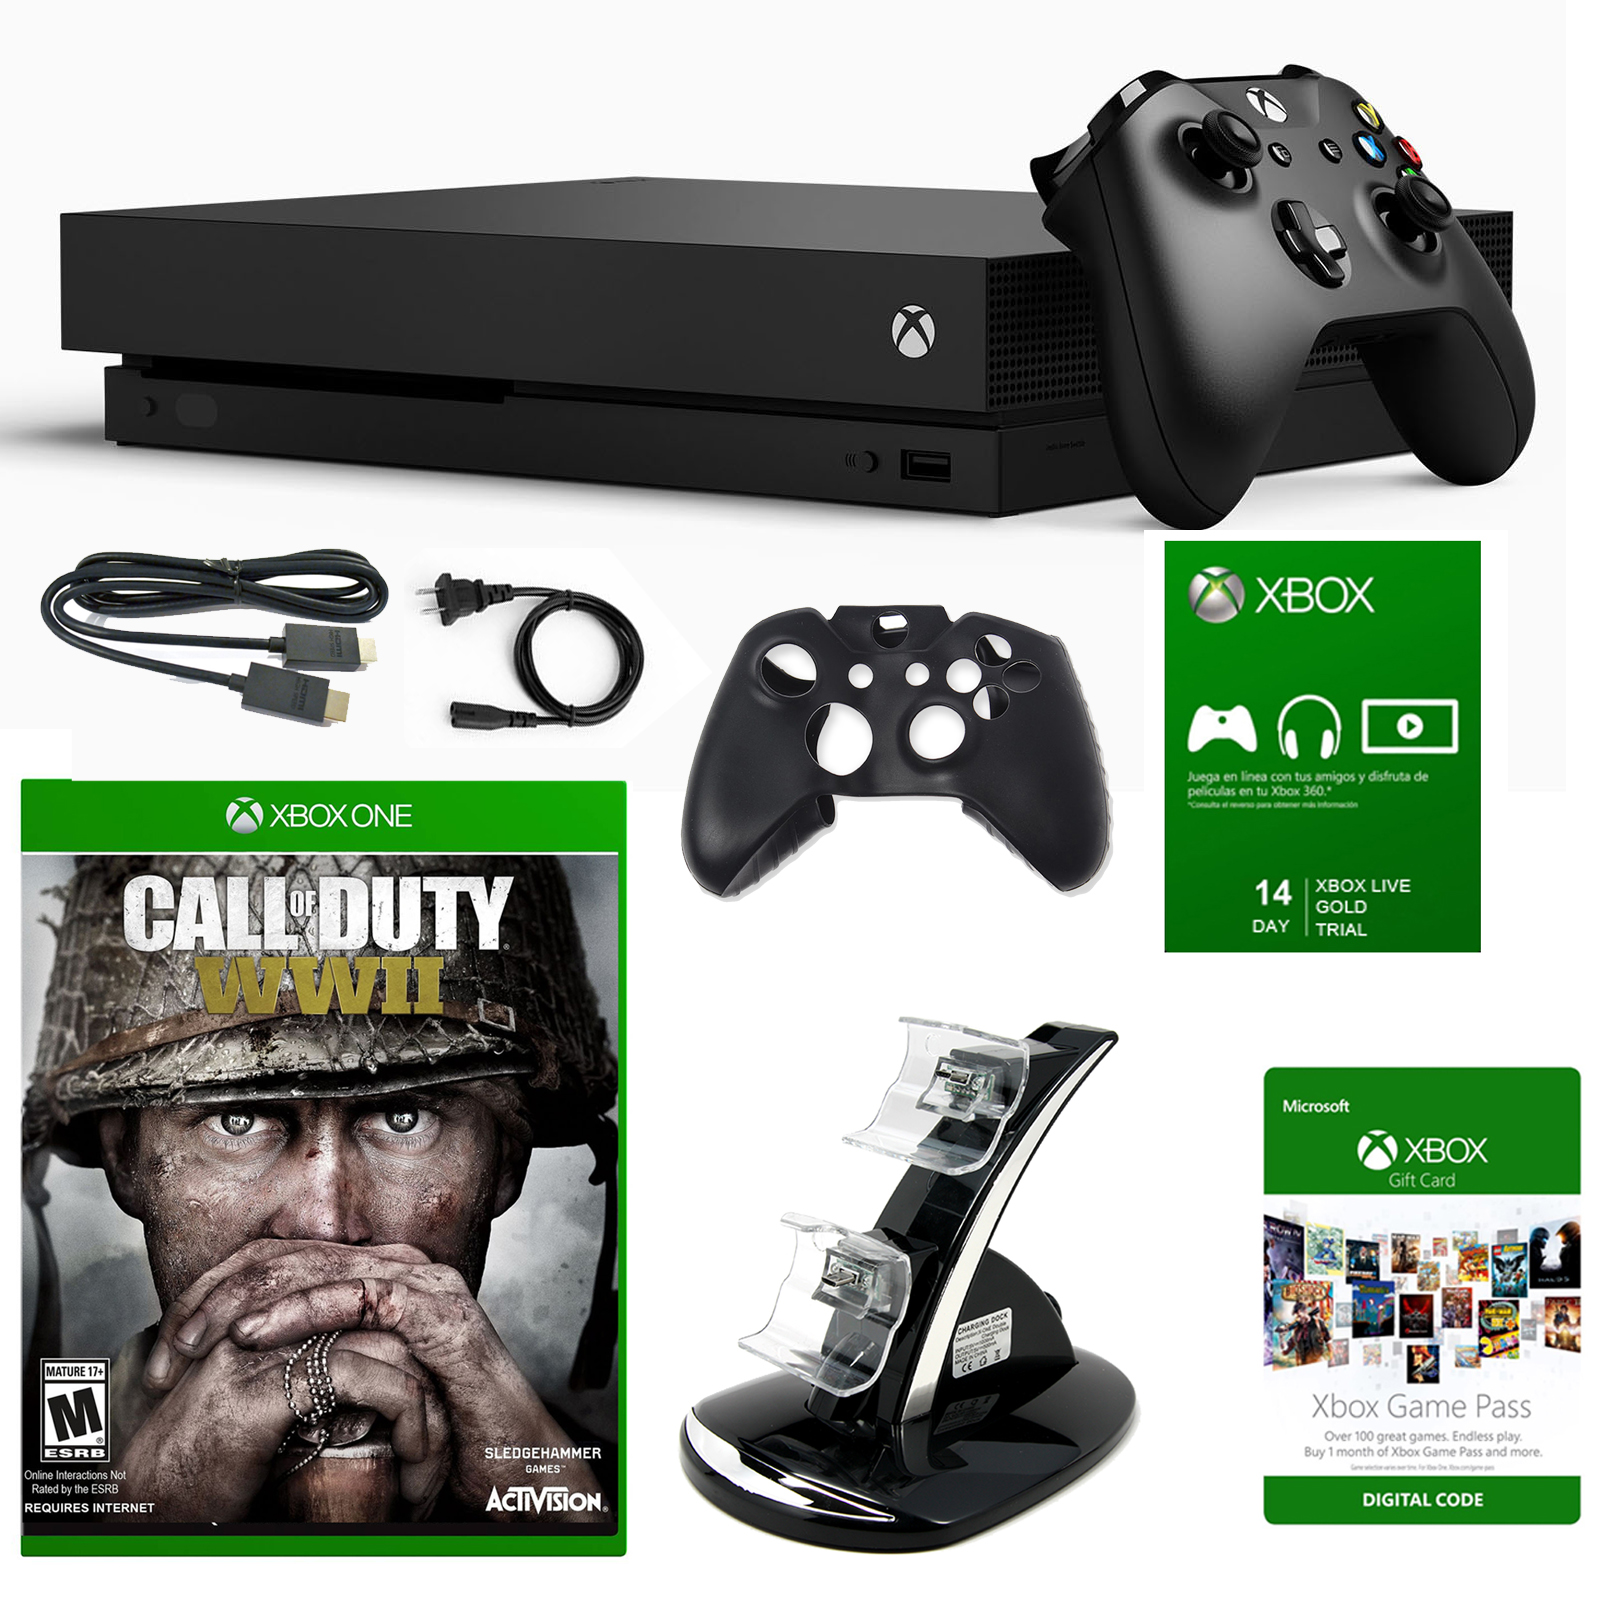 Xbox One X 1TB Console with COD WWII and Accessories by Xbox